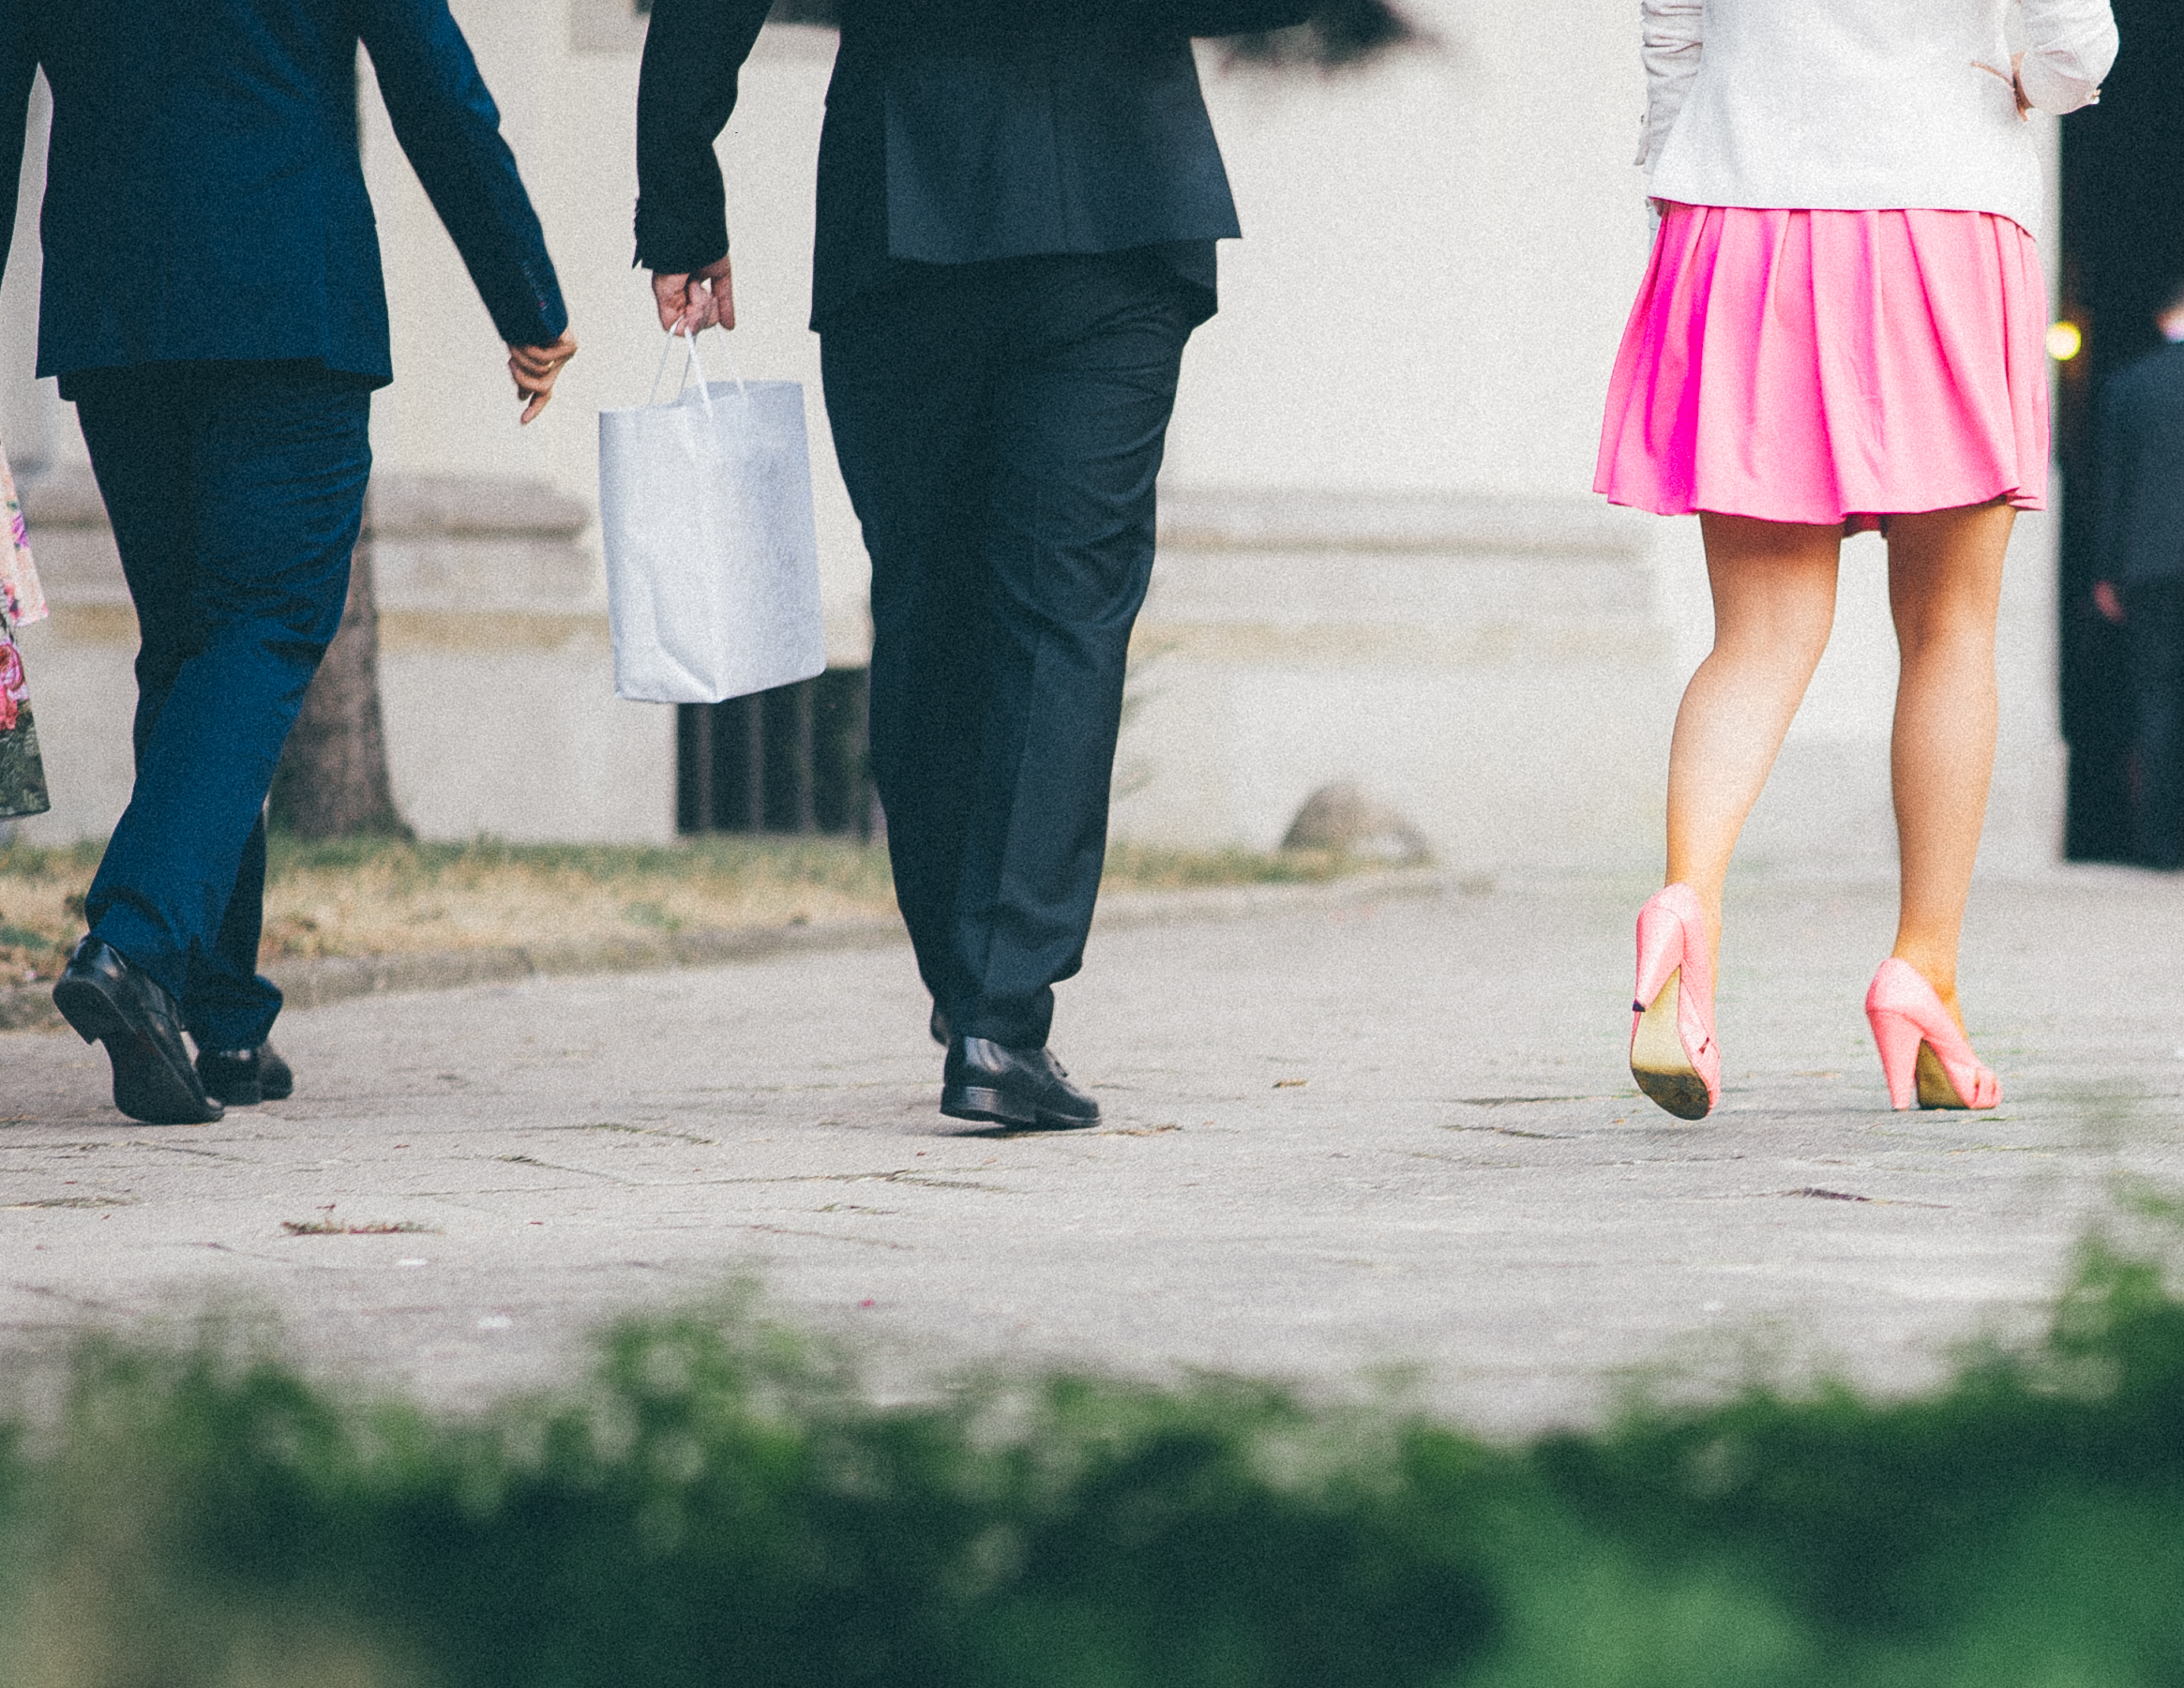 Gender quotas and the crisis of the mediocre man